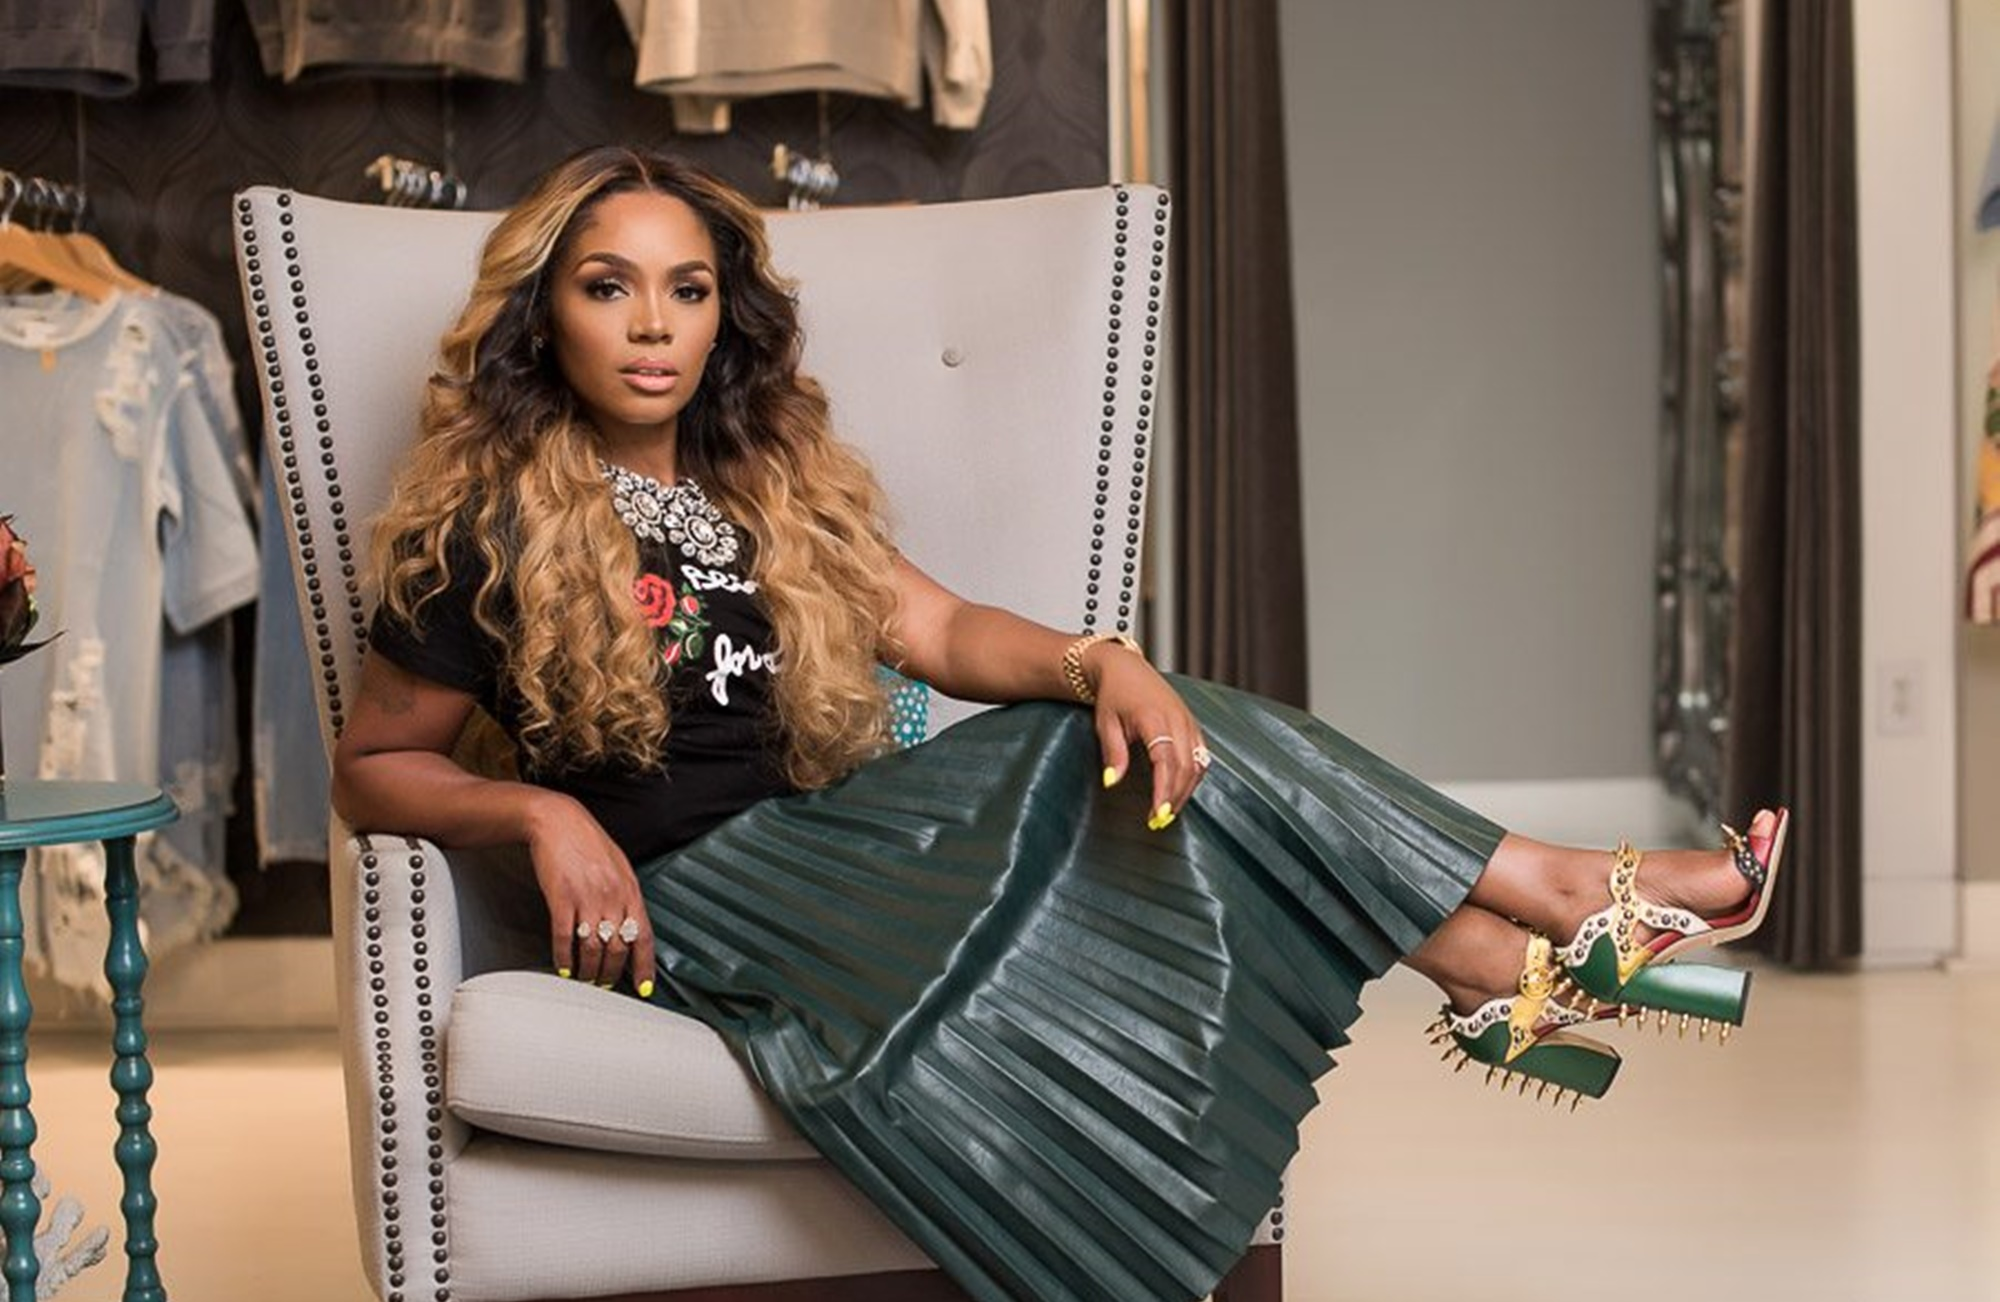 rasheeda-frost-offers-her-gratitude-to-everyone-who-supports-her-business-check-out-her-video-at-pressed